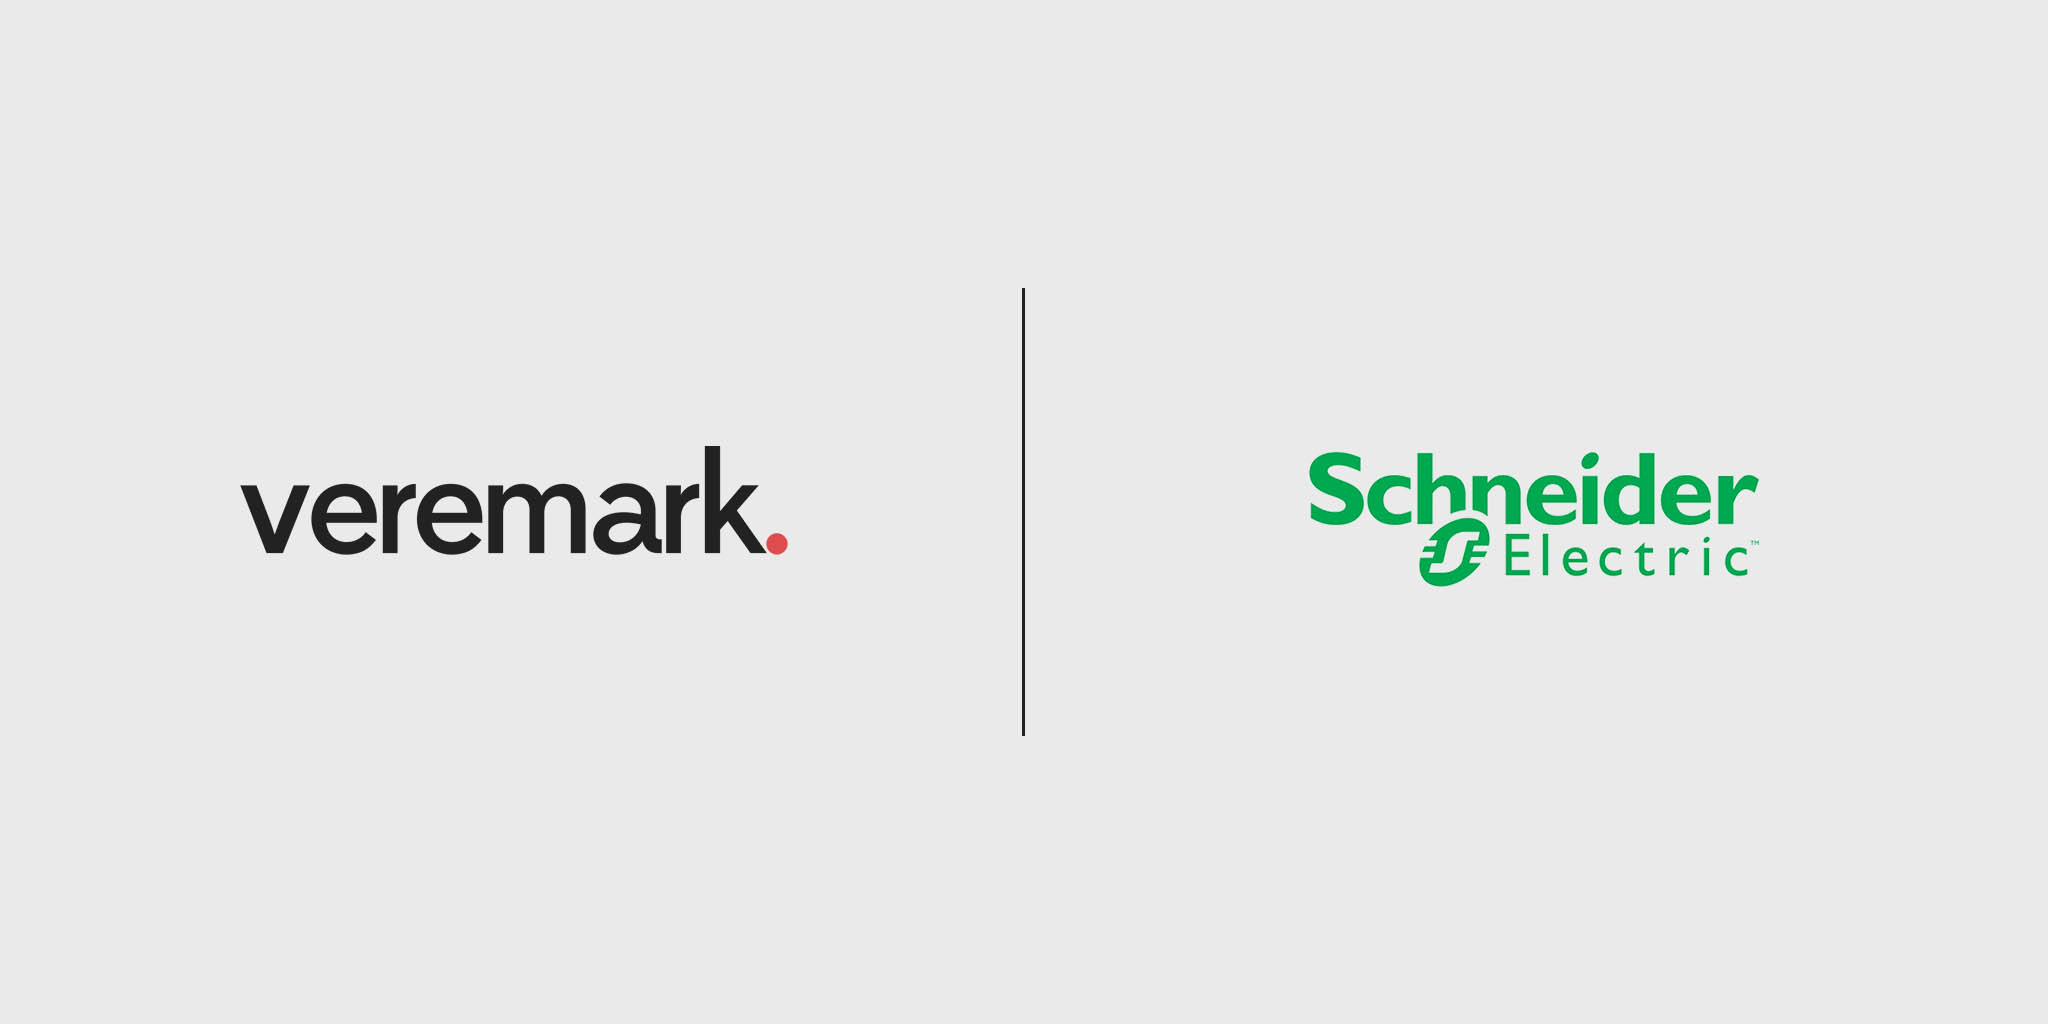 Veremark and Schneider Electric logos next to each other